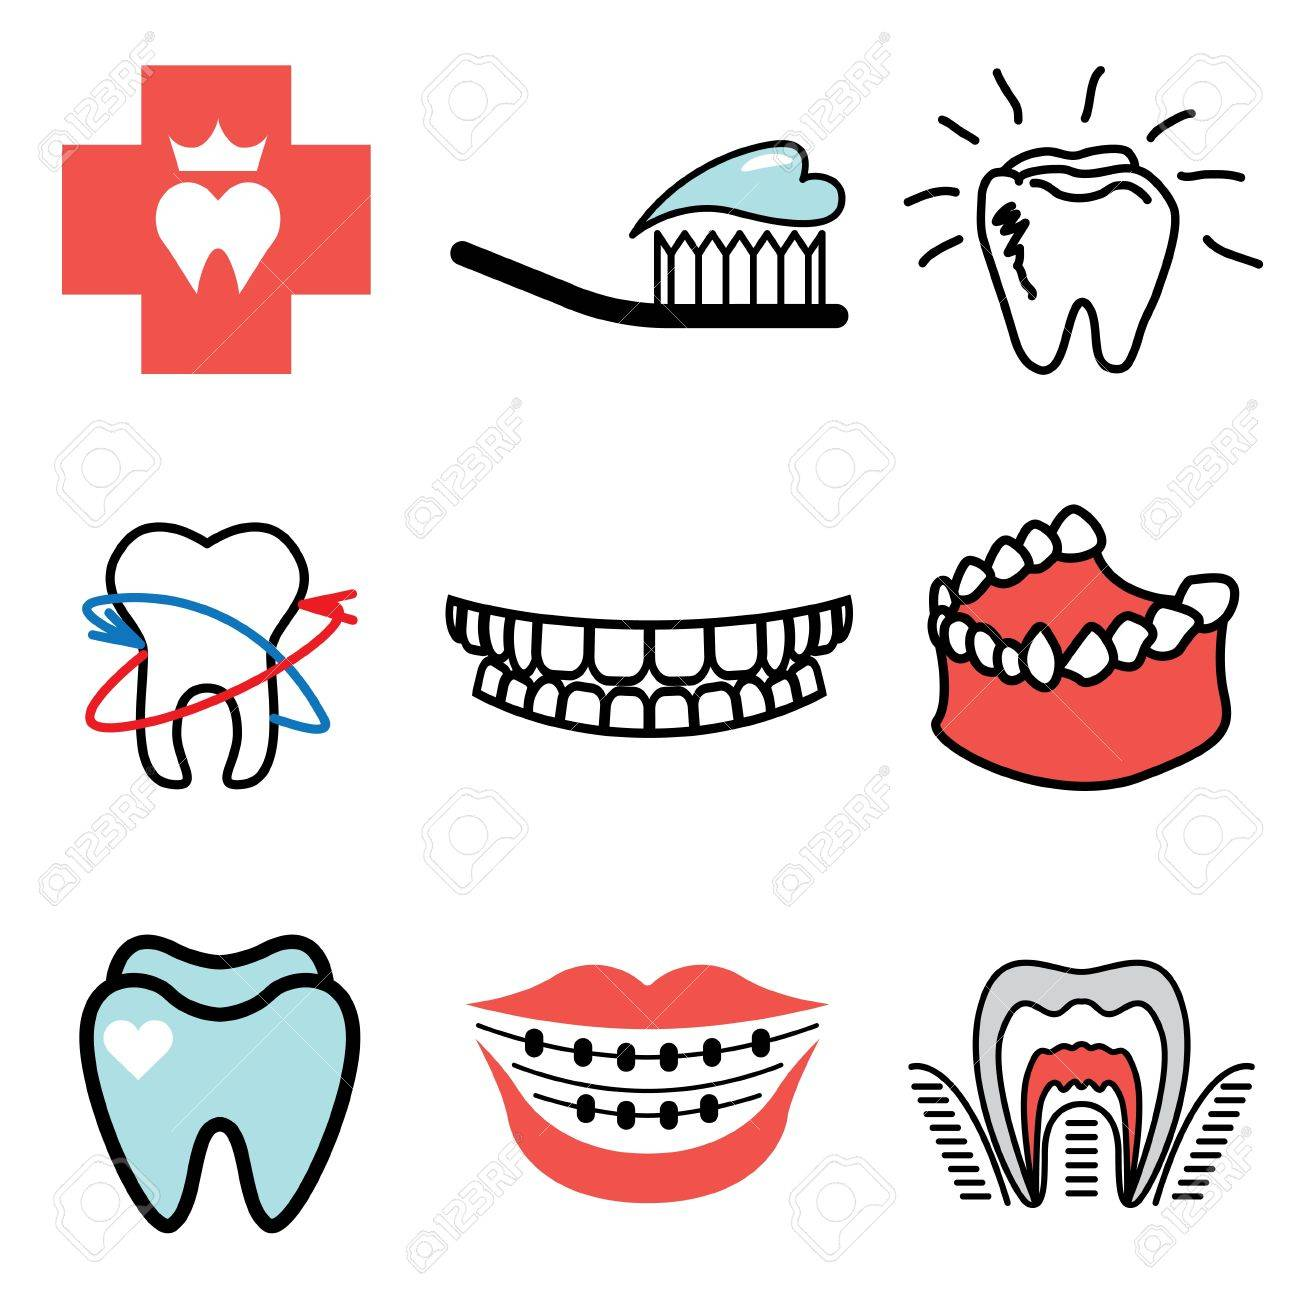 stomatology icons vector set Stock Vector - 13406469